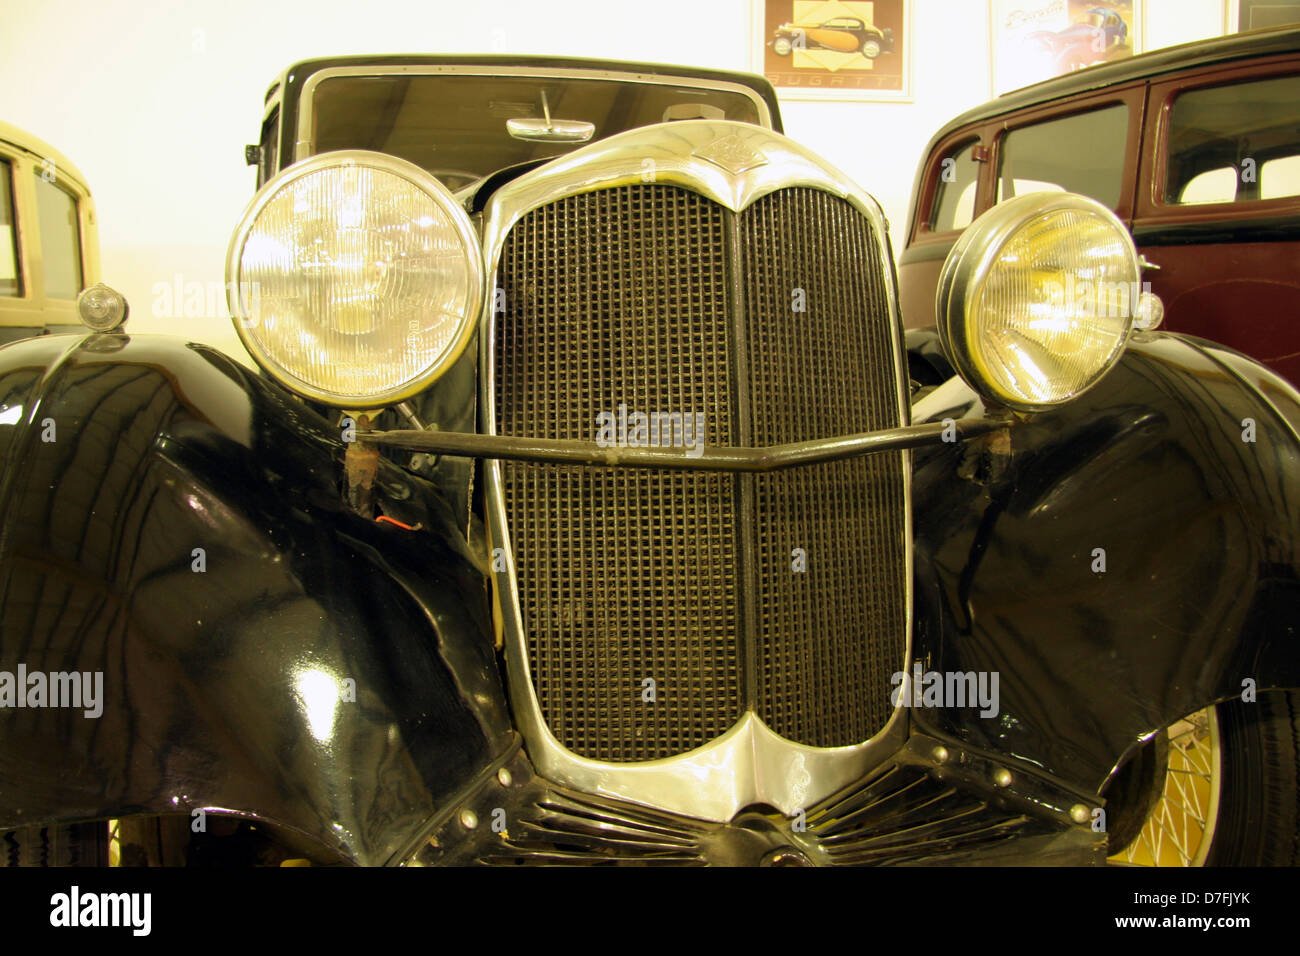 1934 riley 9HP merlin at the car museum in the industrial park of migdal tefen - Stock Image